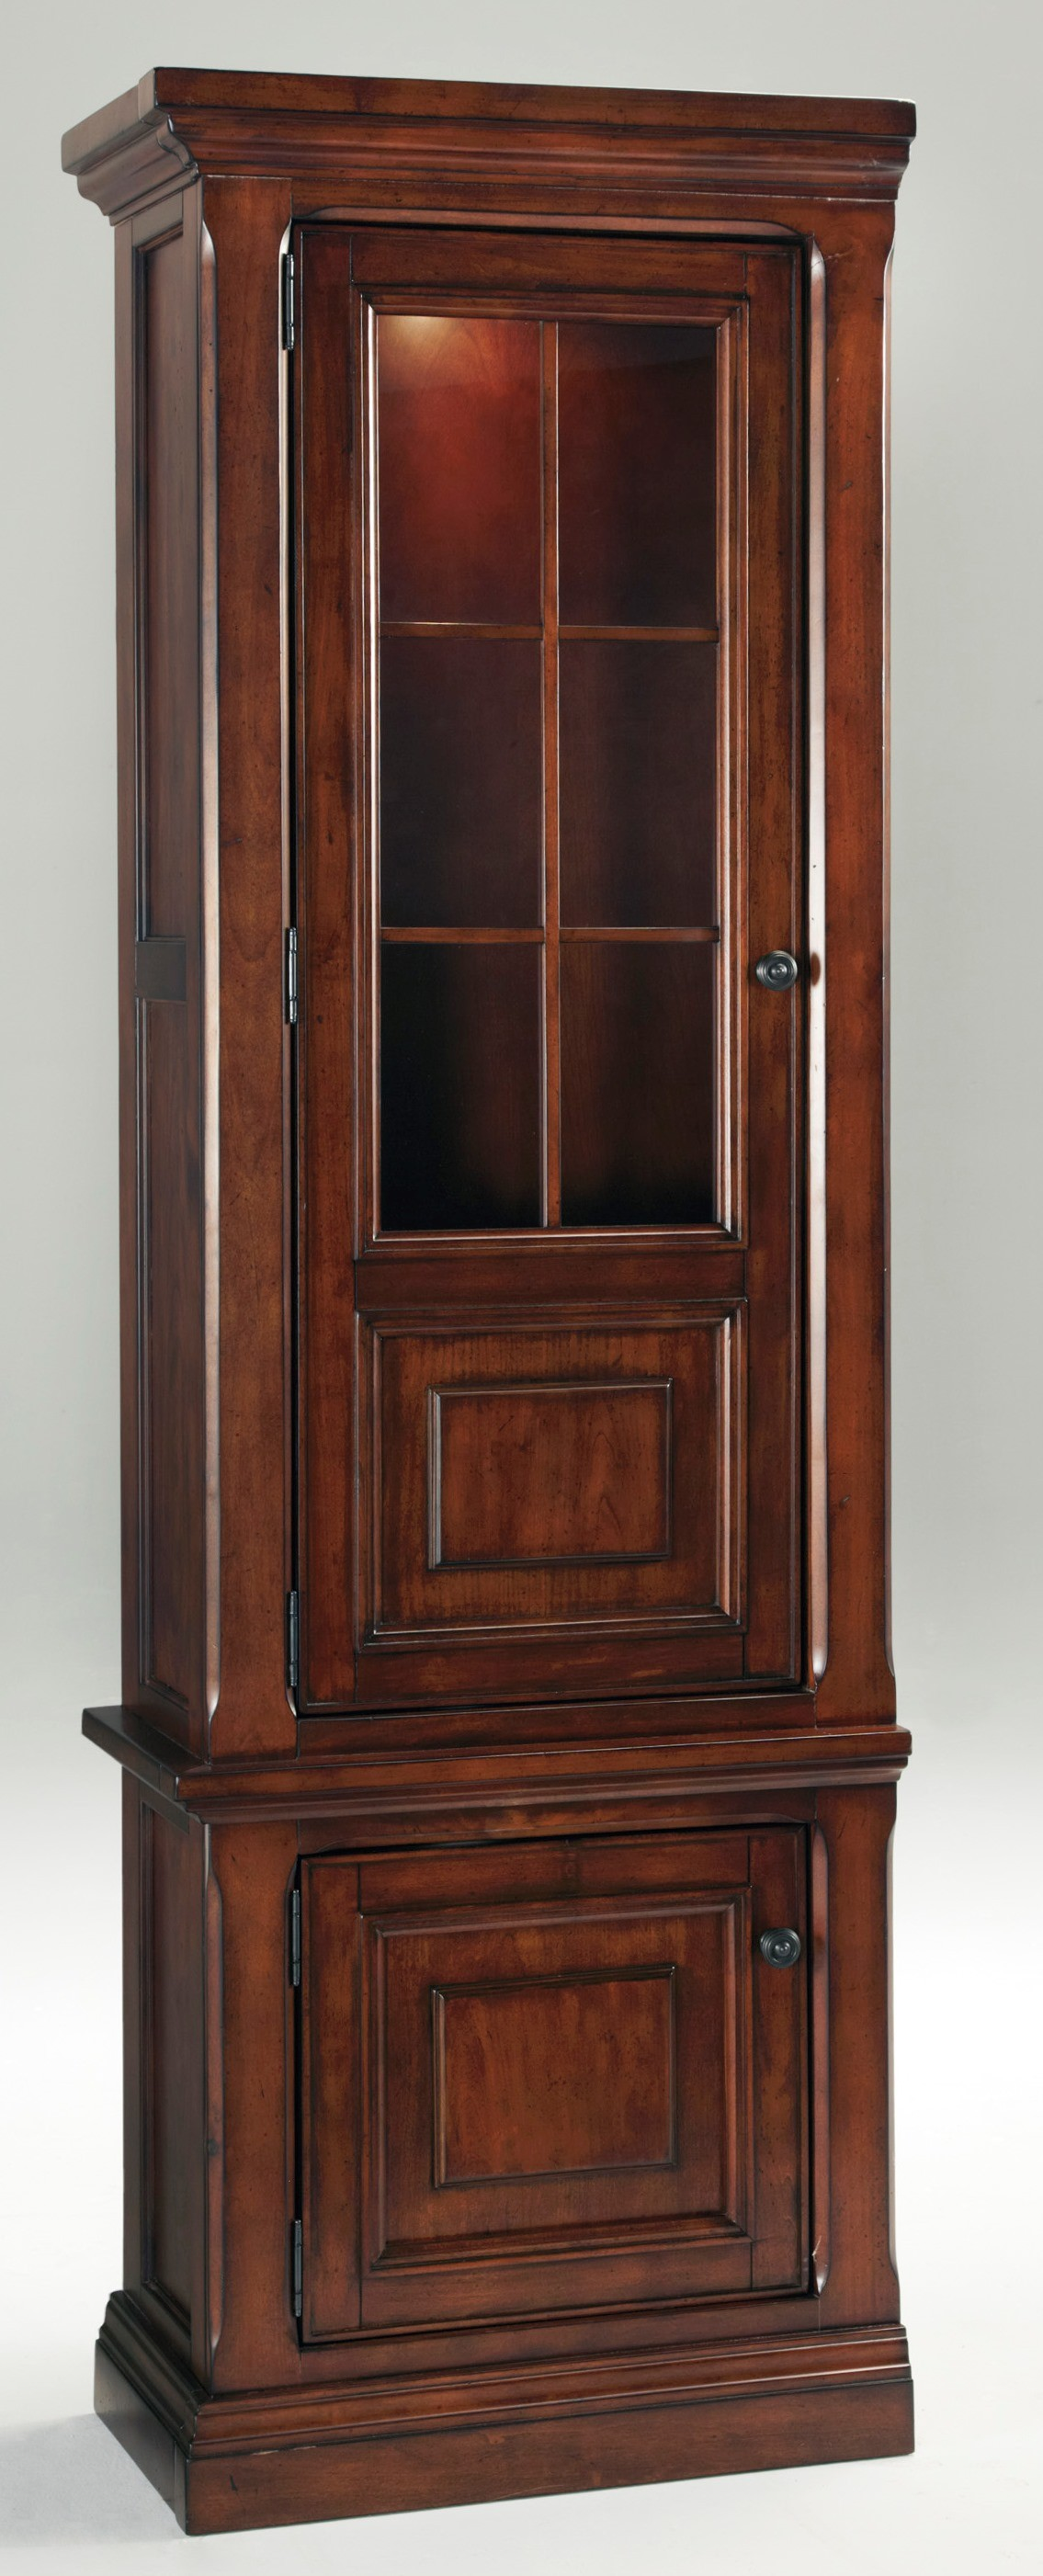 Gaylon Entertainment Large Wall Unit From Ashley Coleman Furniture